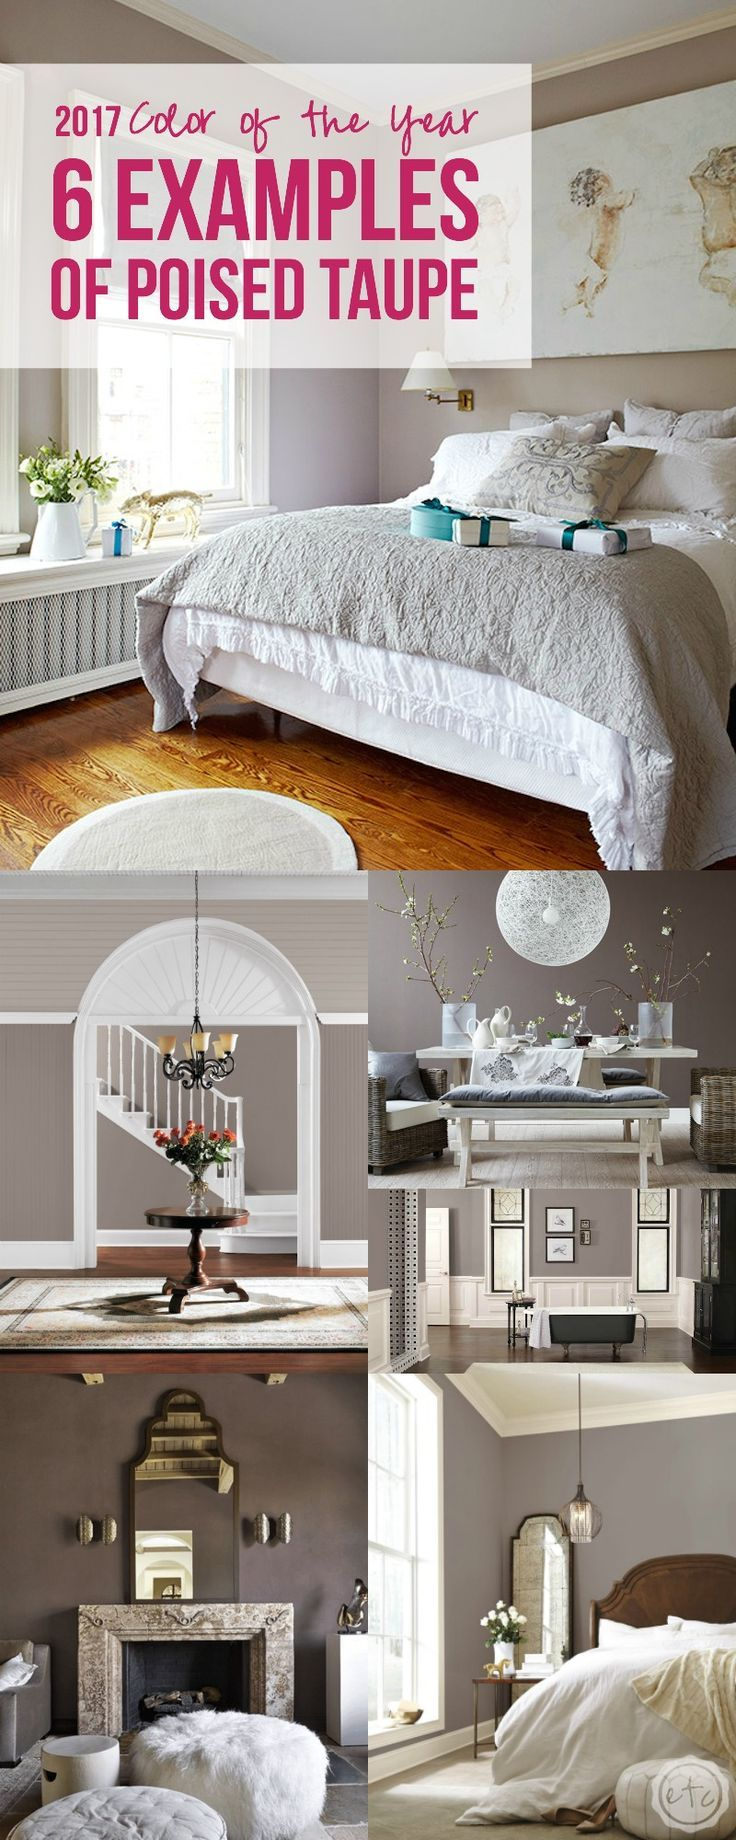 Best 25 taupe bedroom ideas on pinterest bedroom paint - Best wall colors for bedrooms 2017 ...